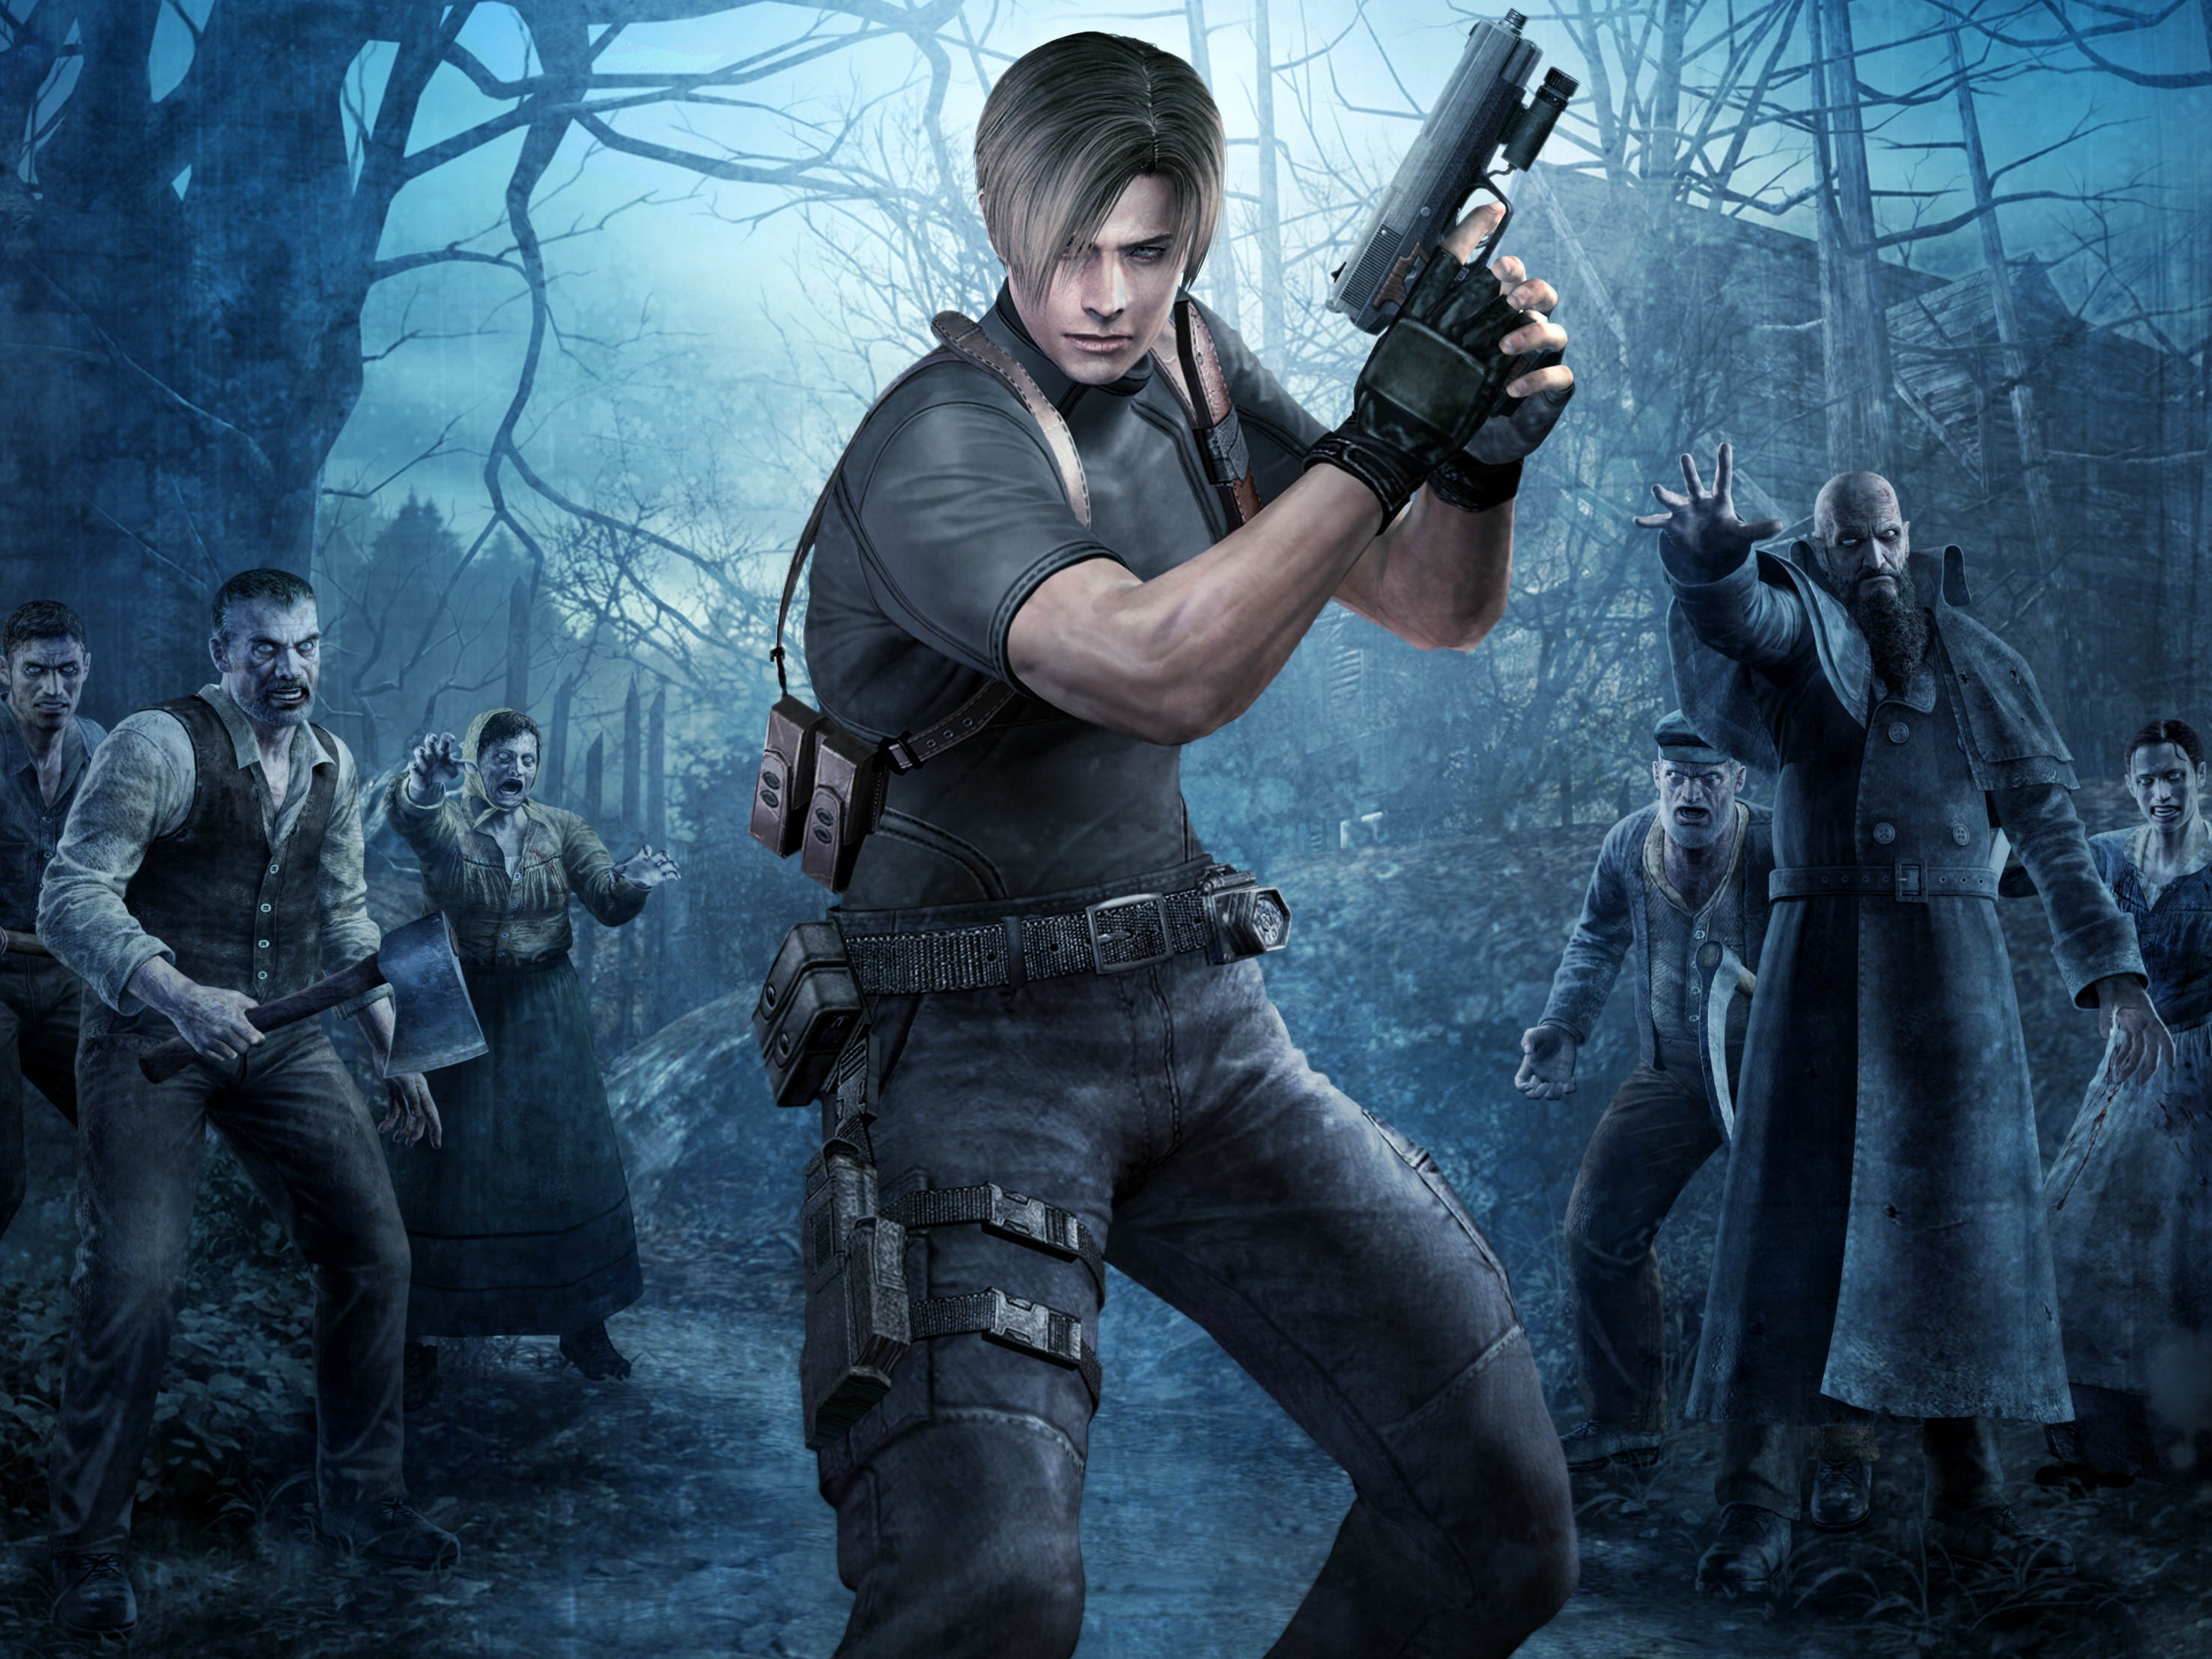 63 Leon S Kennedy Hd Wallpapers Background Images Wallpaper Abyss